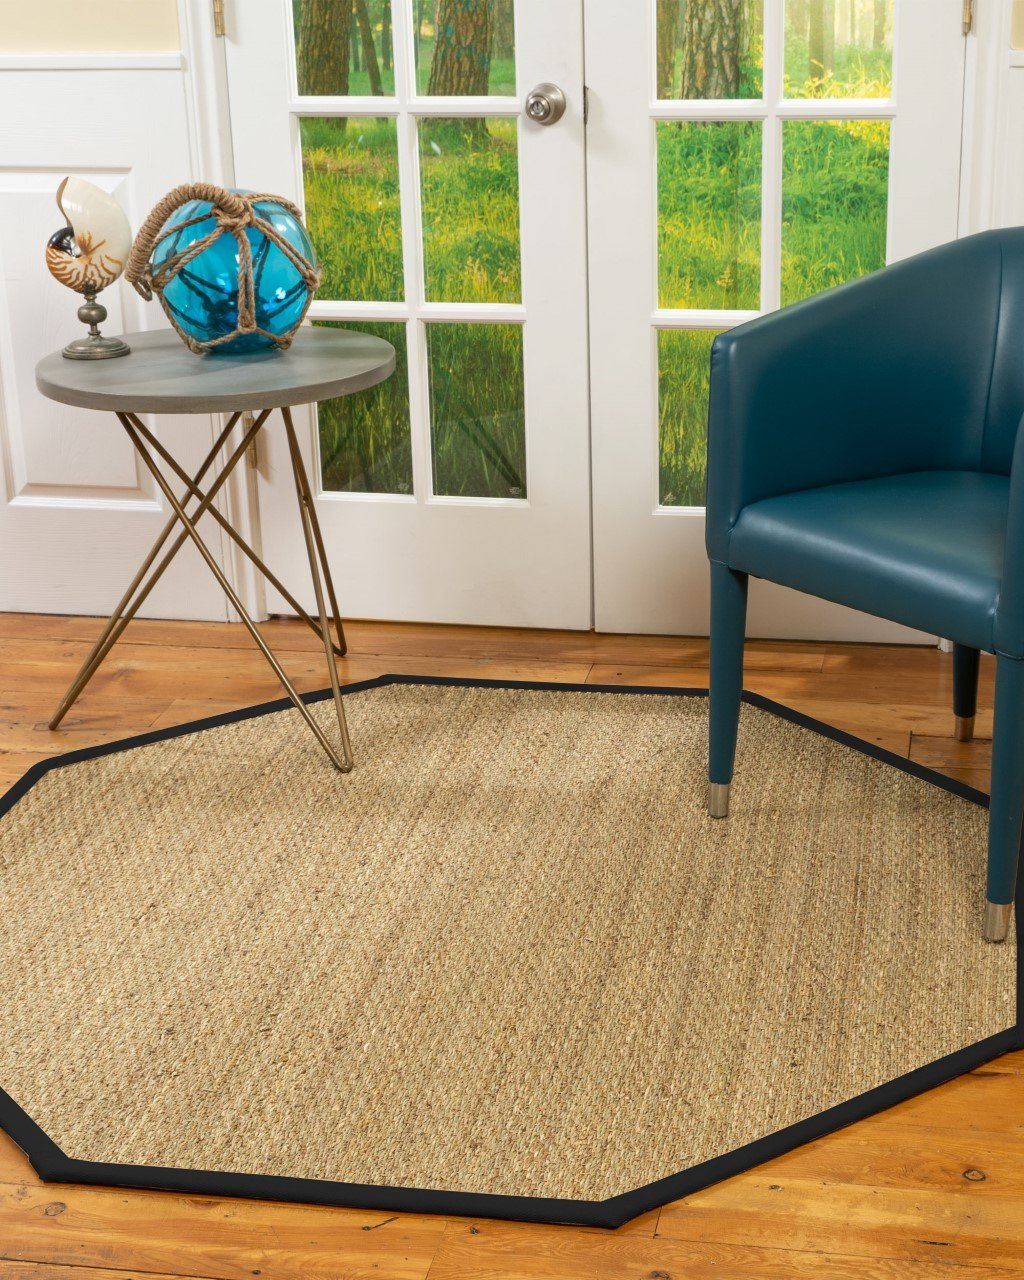 Mayfair Seagrass Rug w/ Extra Wide Black Border, 7' Octagon Product Image